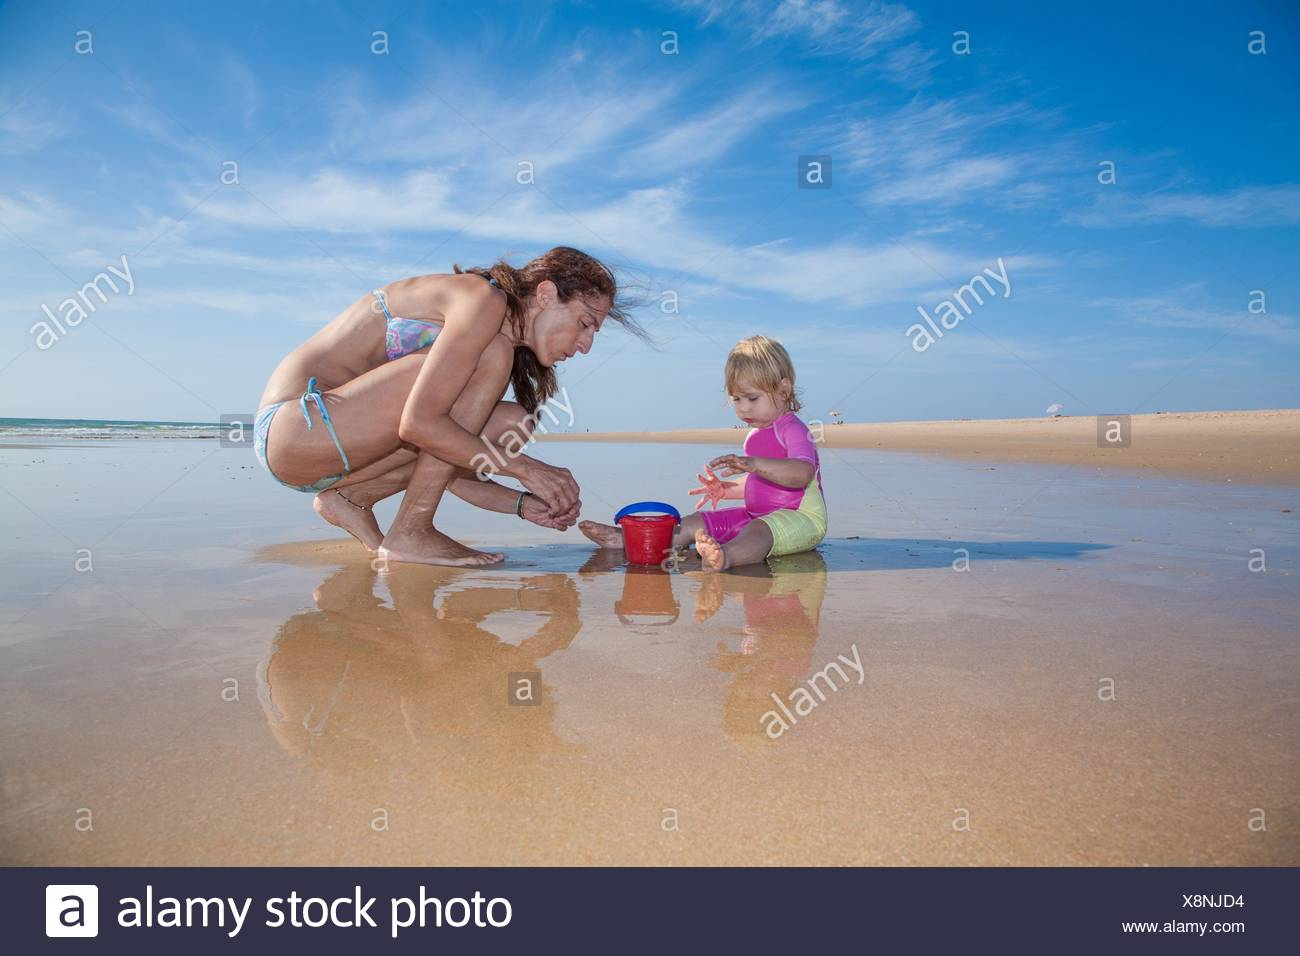 summer family of two years blonde baby pink and yellow swimsuit sitting on water with brunette woman mother in bikini with red plastic bucket at sea - Stock Image